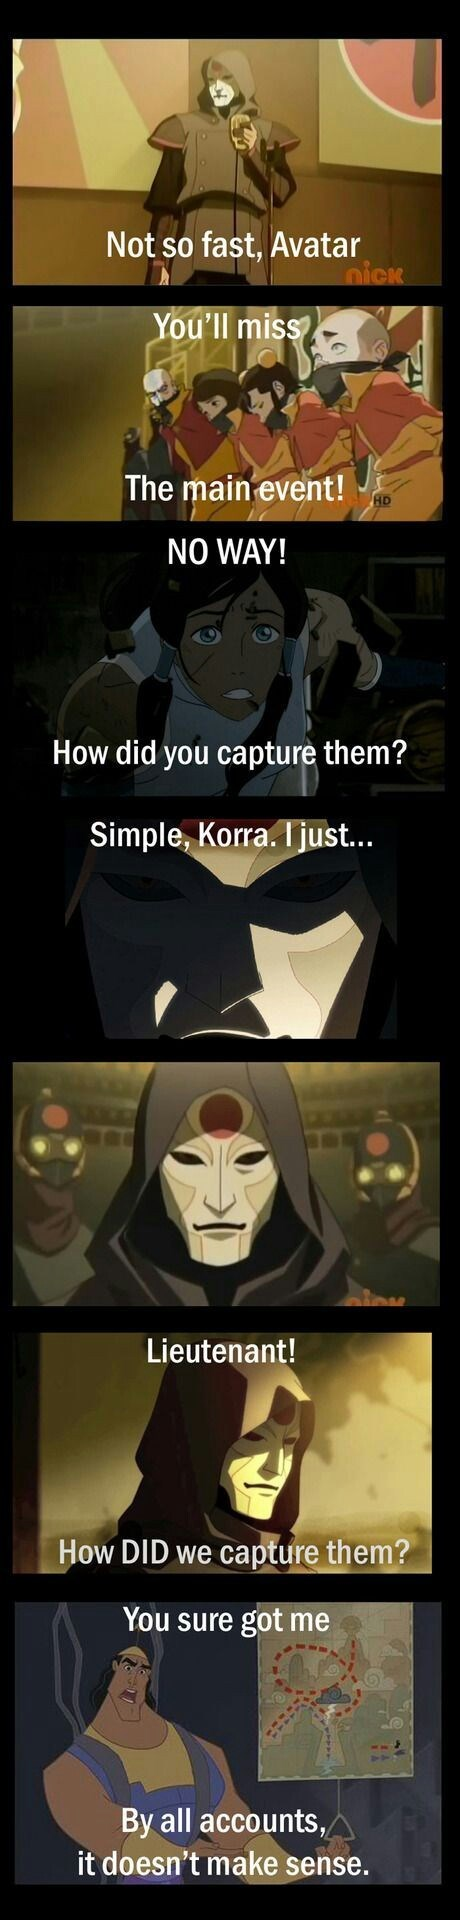 Cartoon - Not so fast, Avatar nick You'll miss The main event! NO WAY! How did you capture them? Simple, Korra. Ijust... Lieutenant! How DID we capture them? You sure got me By all accounts, it doesn't make sense.